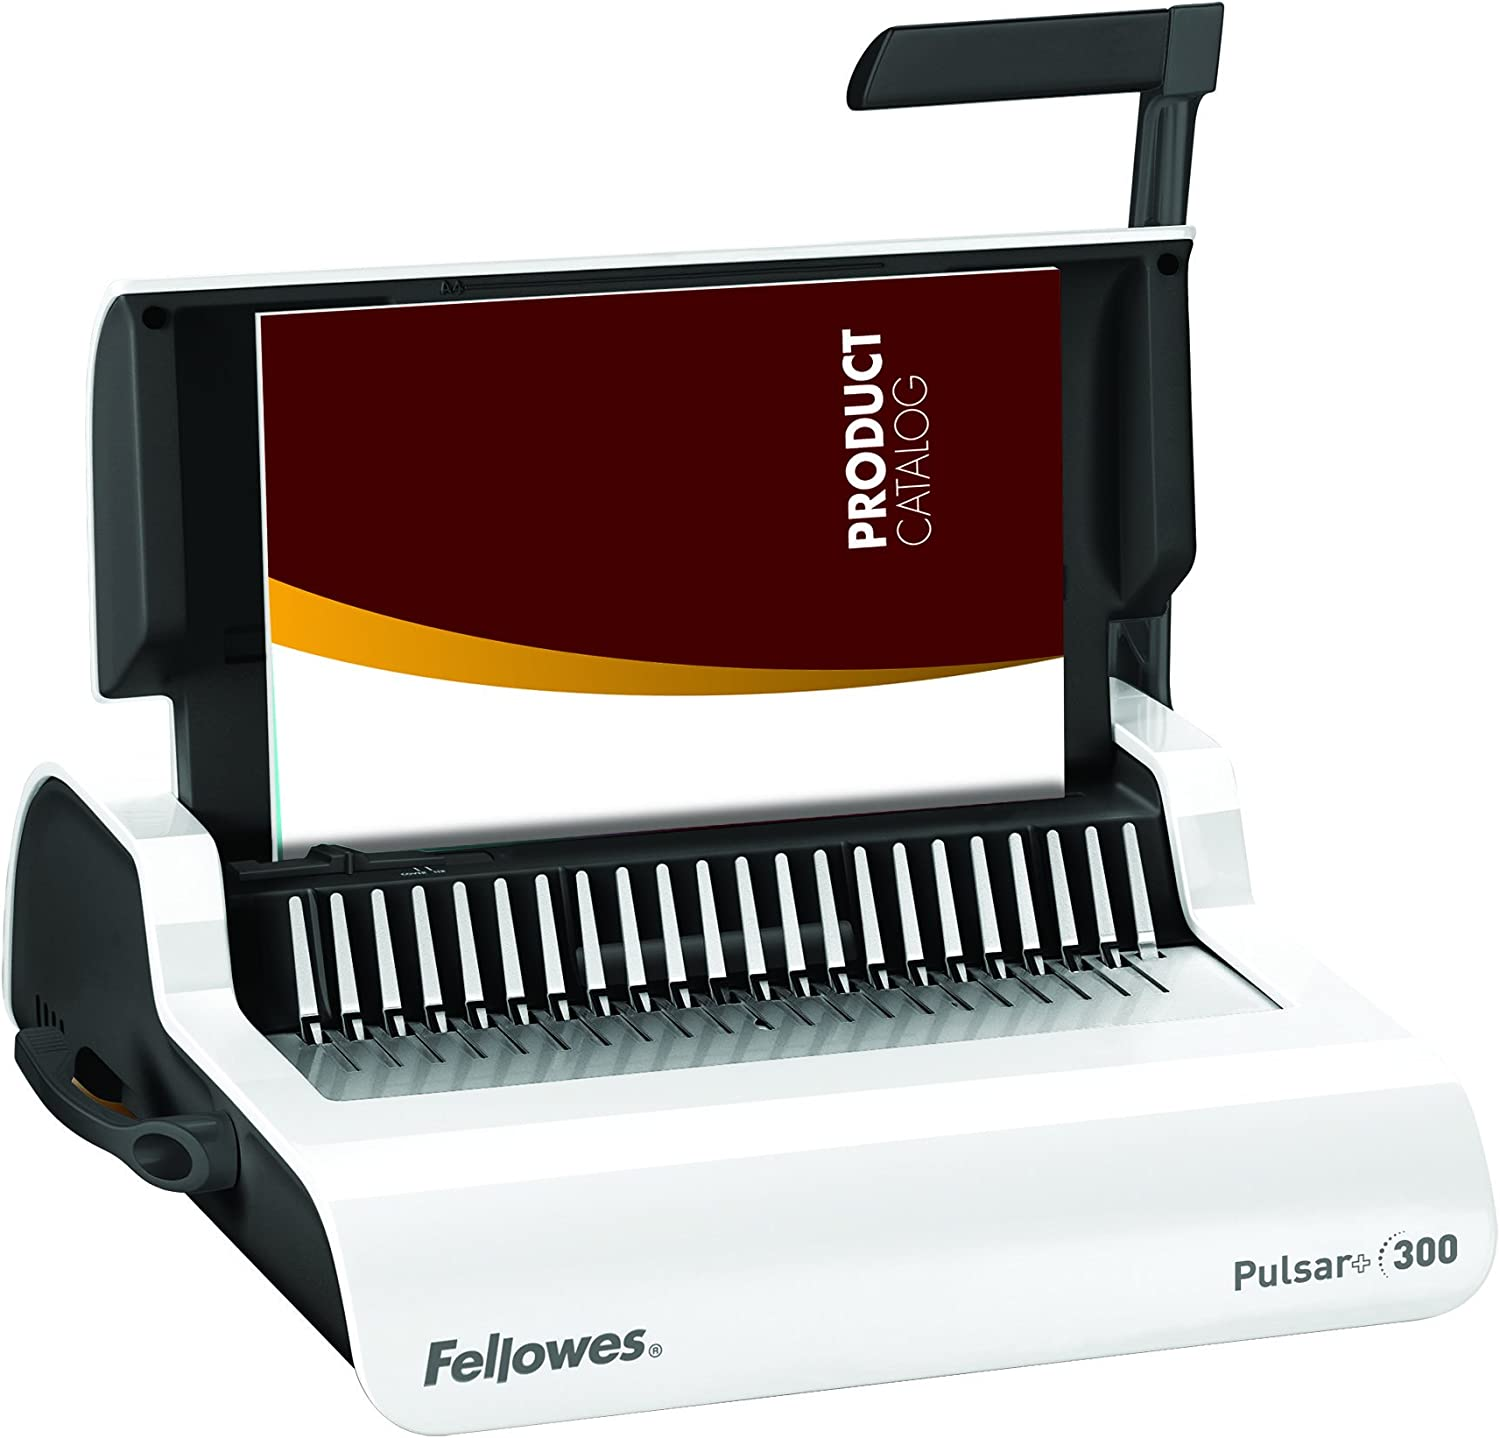 Fellowes 5006801-99 Binding Machine Pulsar+ Comb Binding (5006801), Gray : Office Products